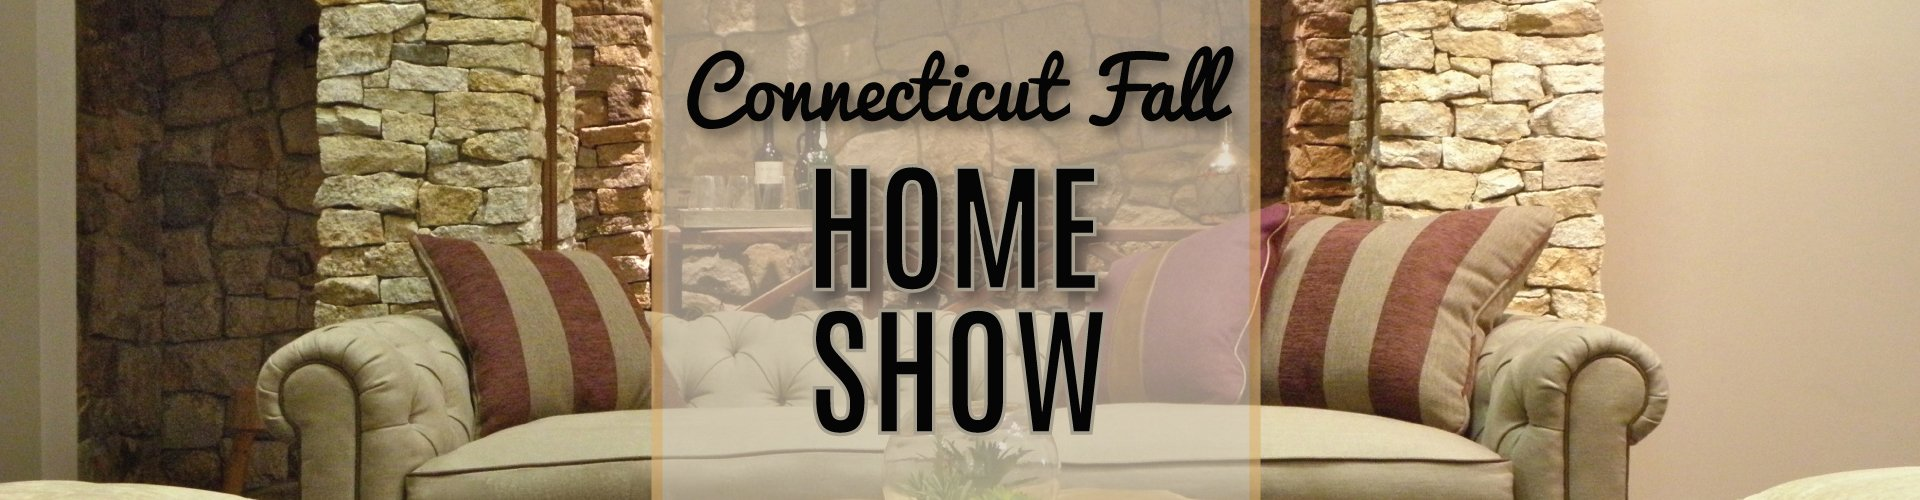 Fall CT Home Show 2017